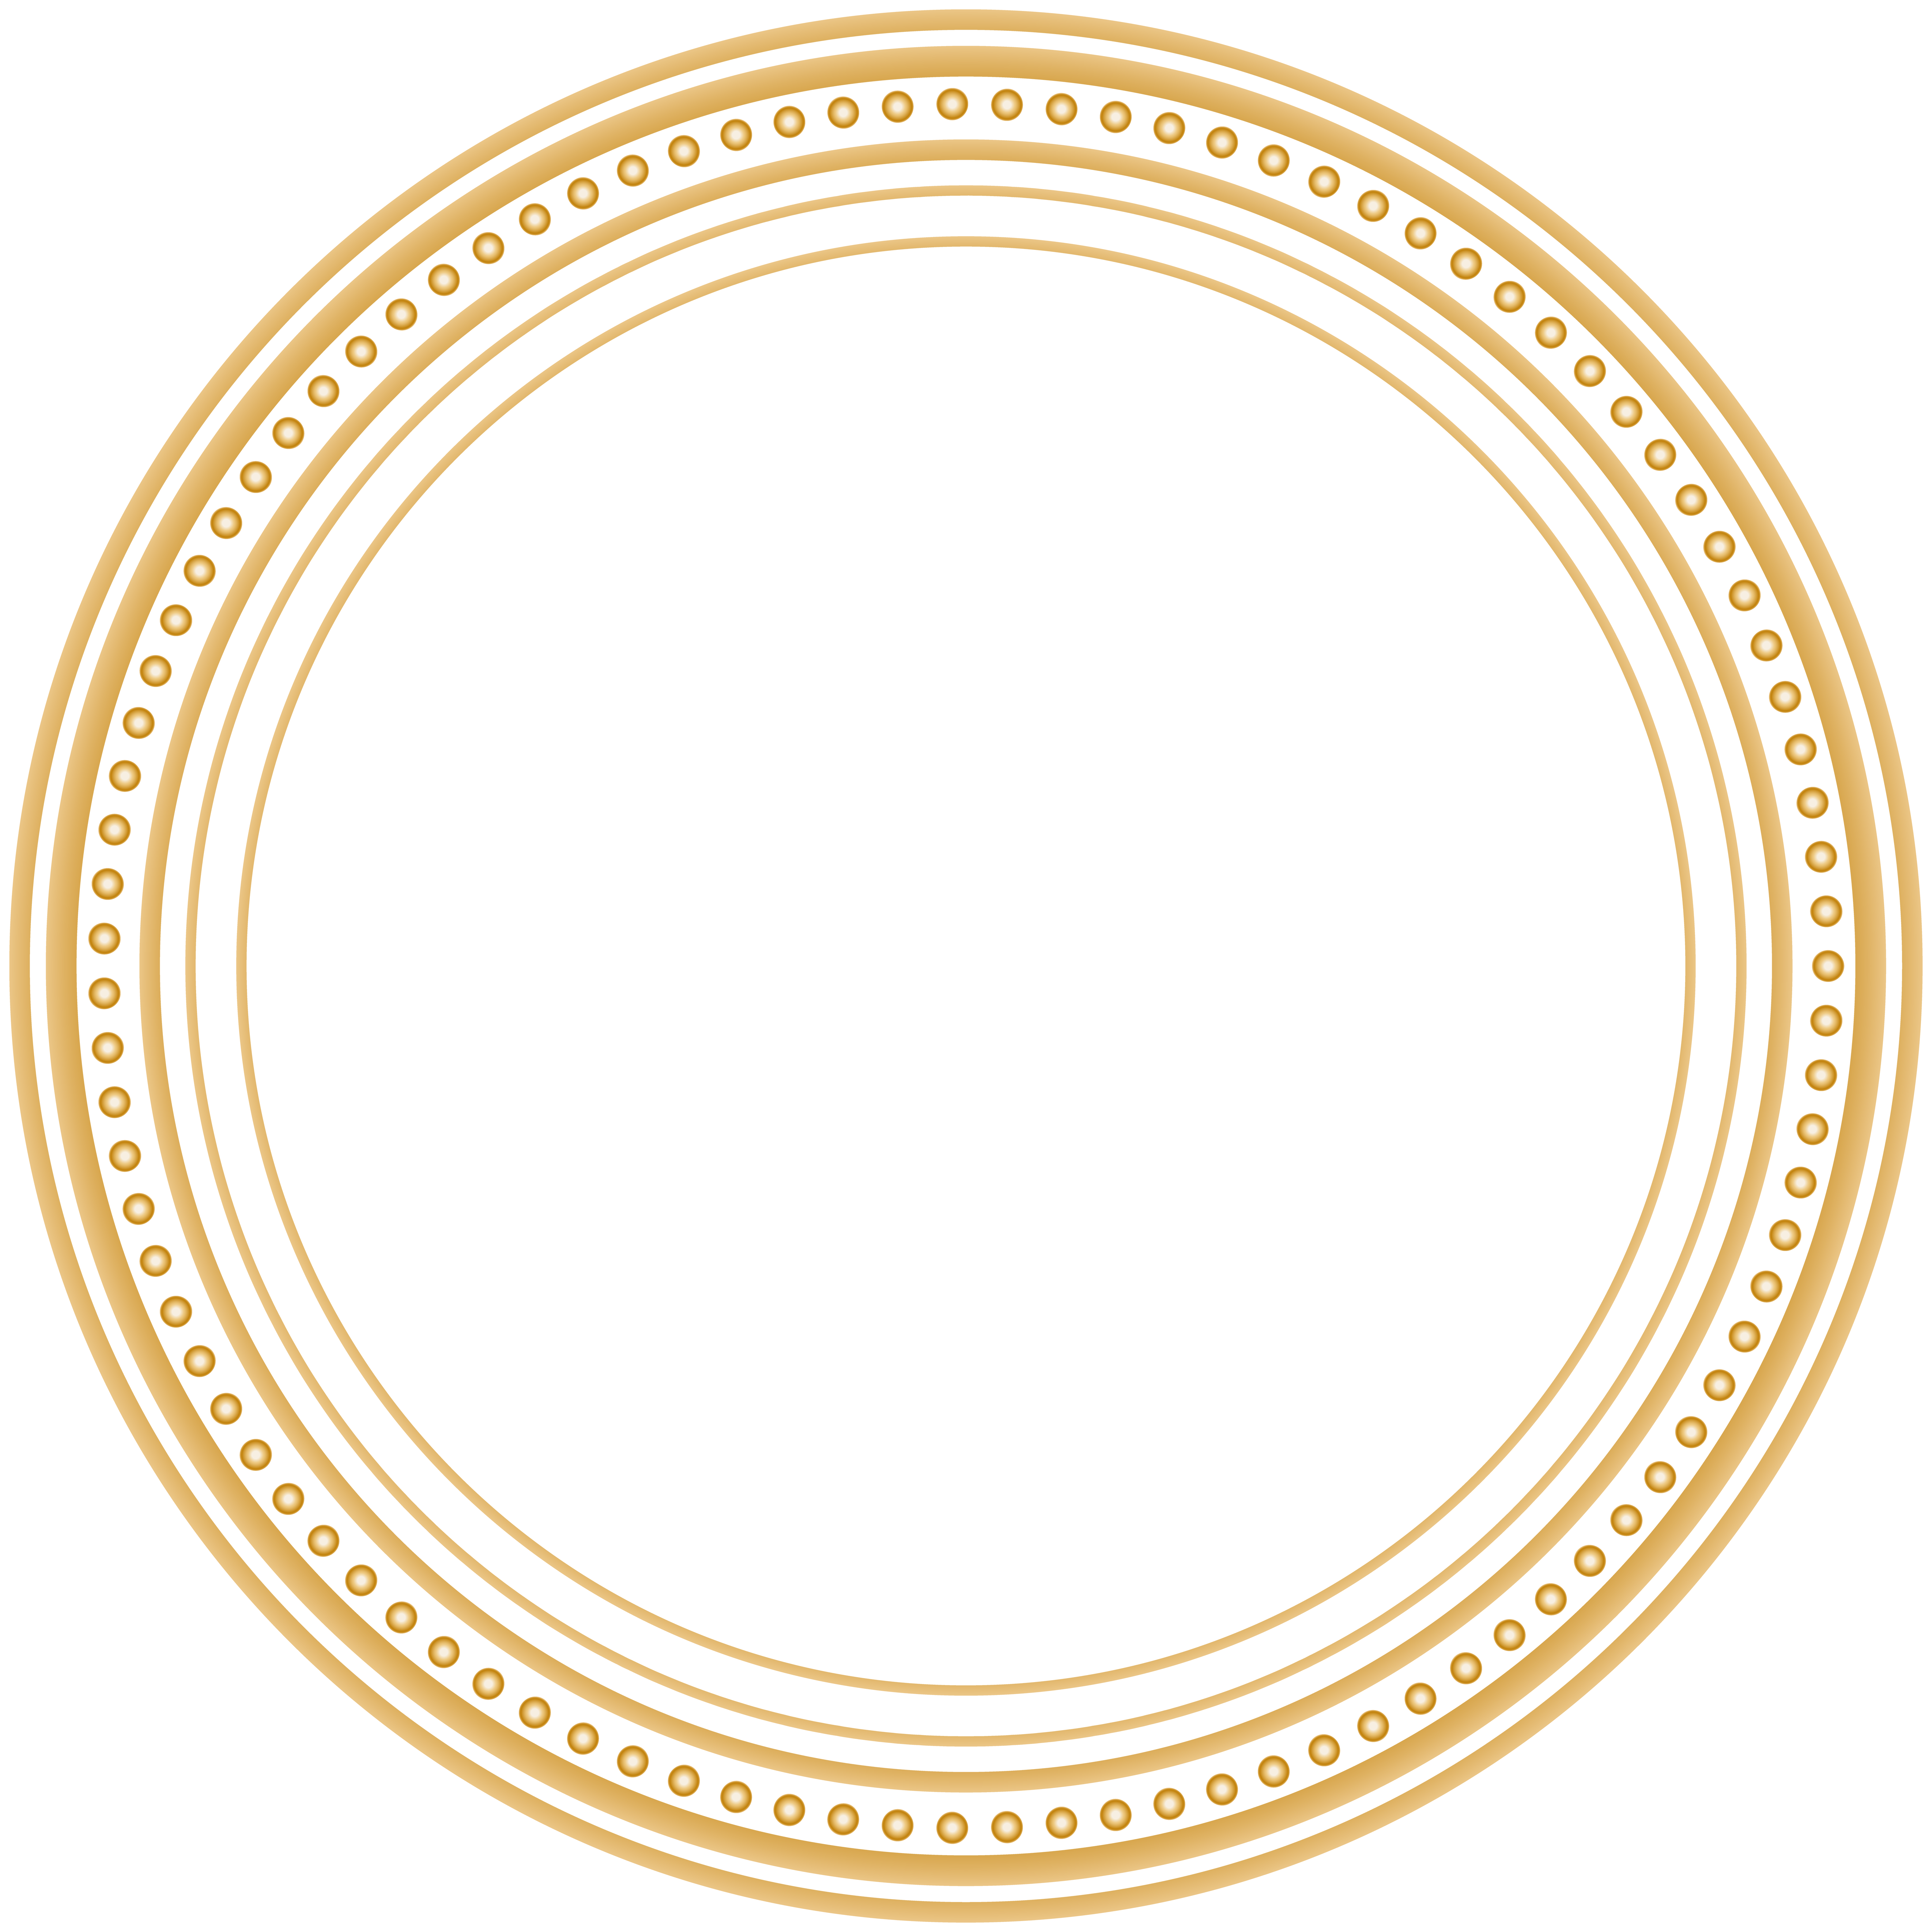 Round art png image. Frame clip clipart freeuse library